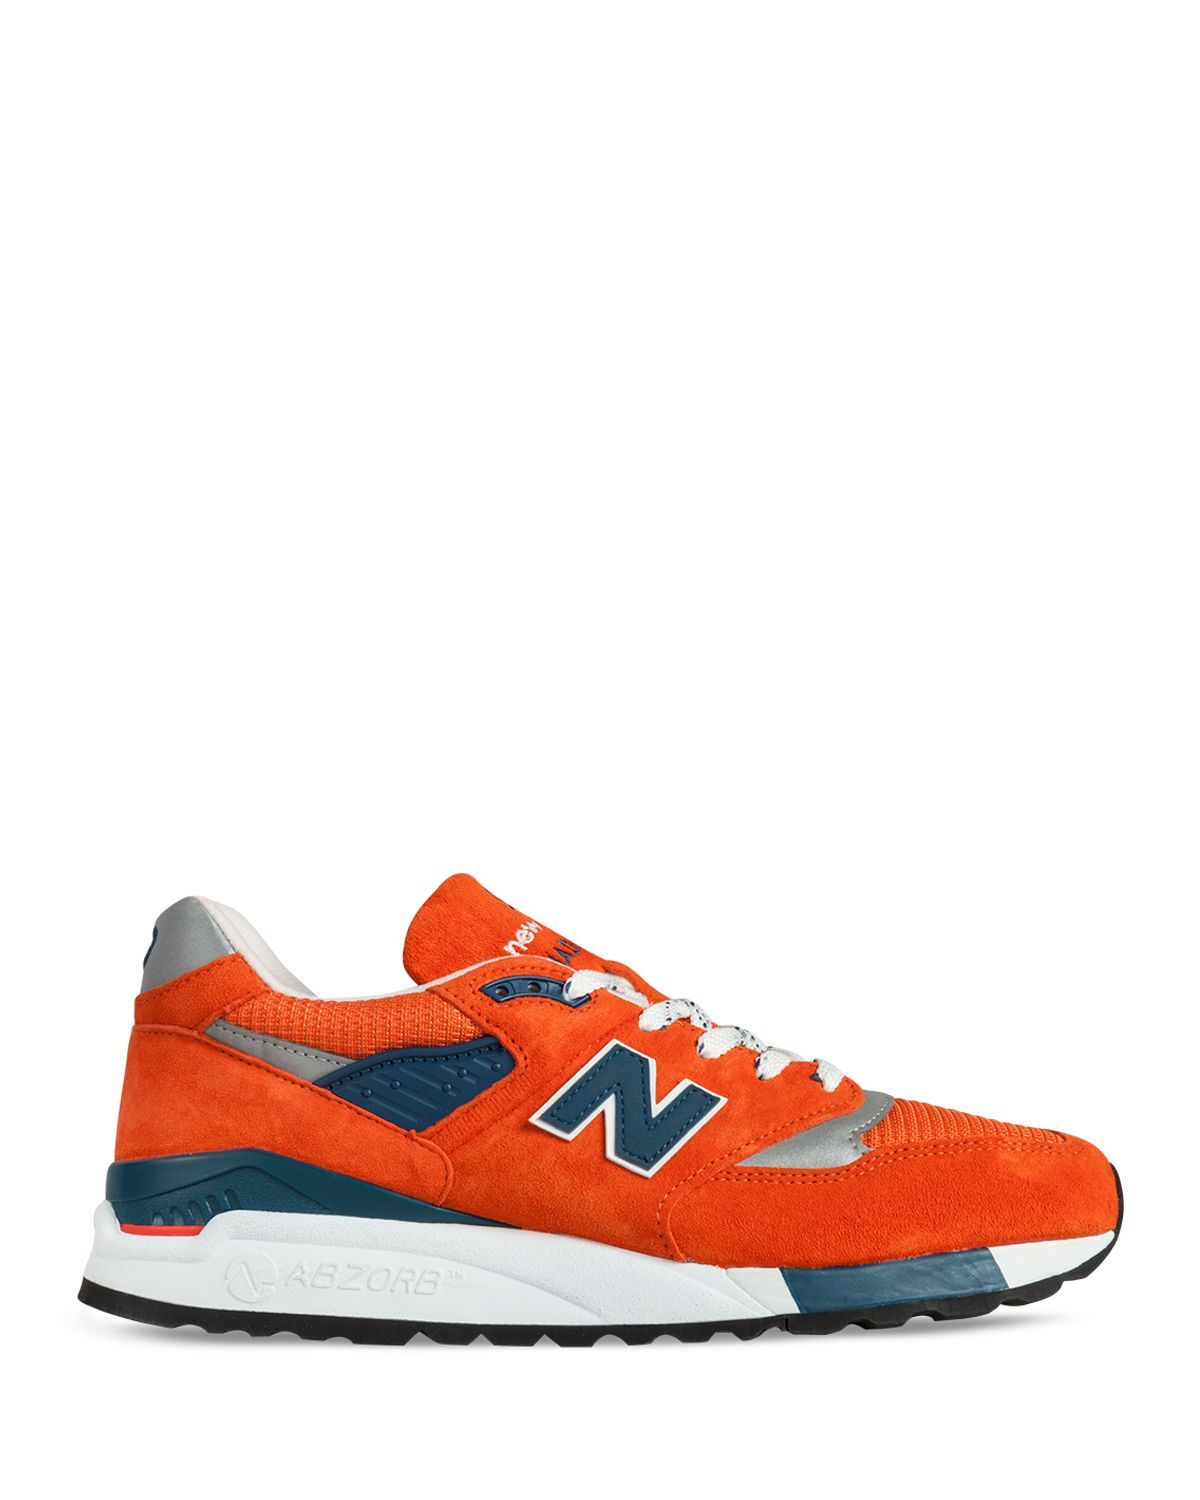 Are Any New Balance Shoes Made In The Usa